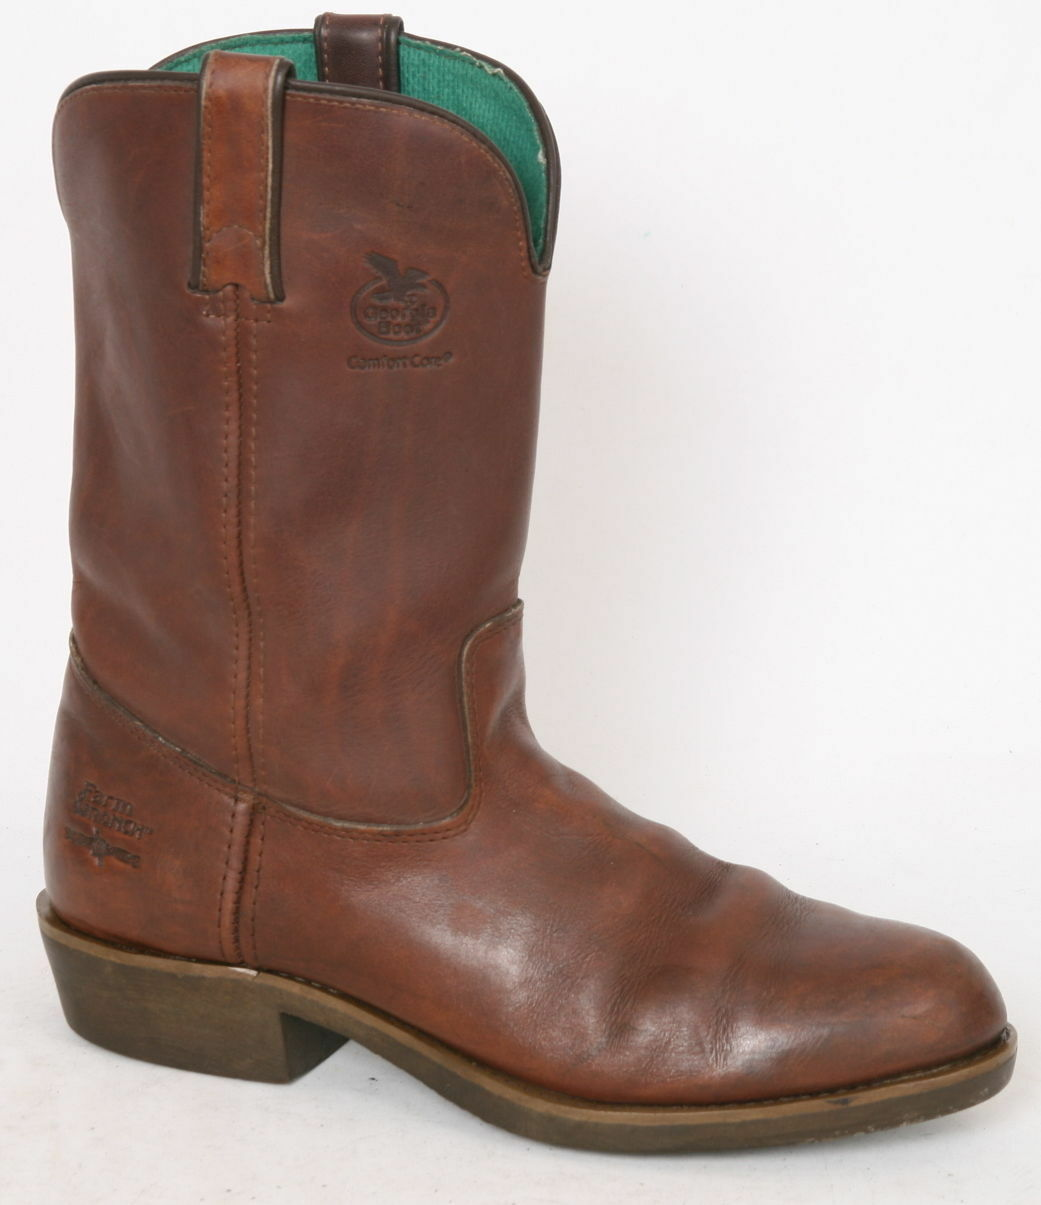 Top 10 Cowboy Boots for Men | eBay